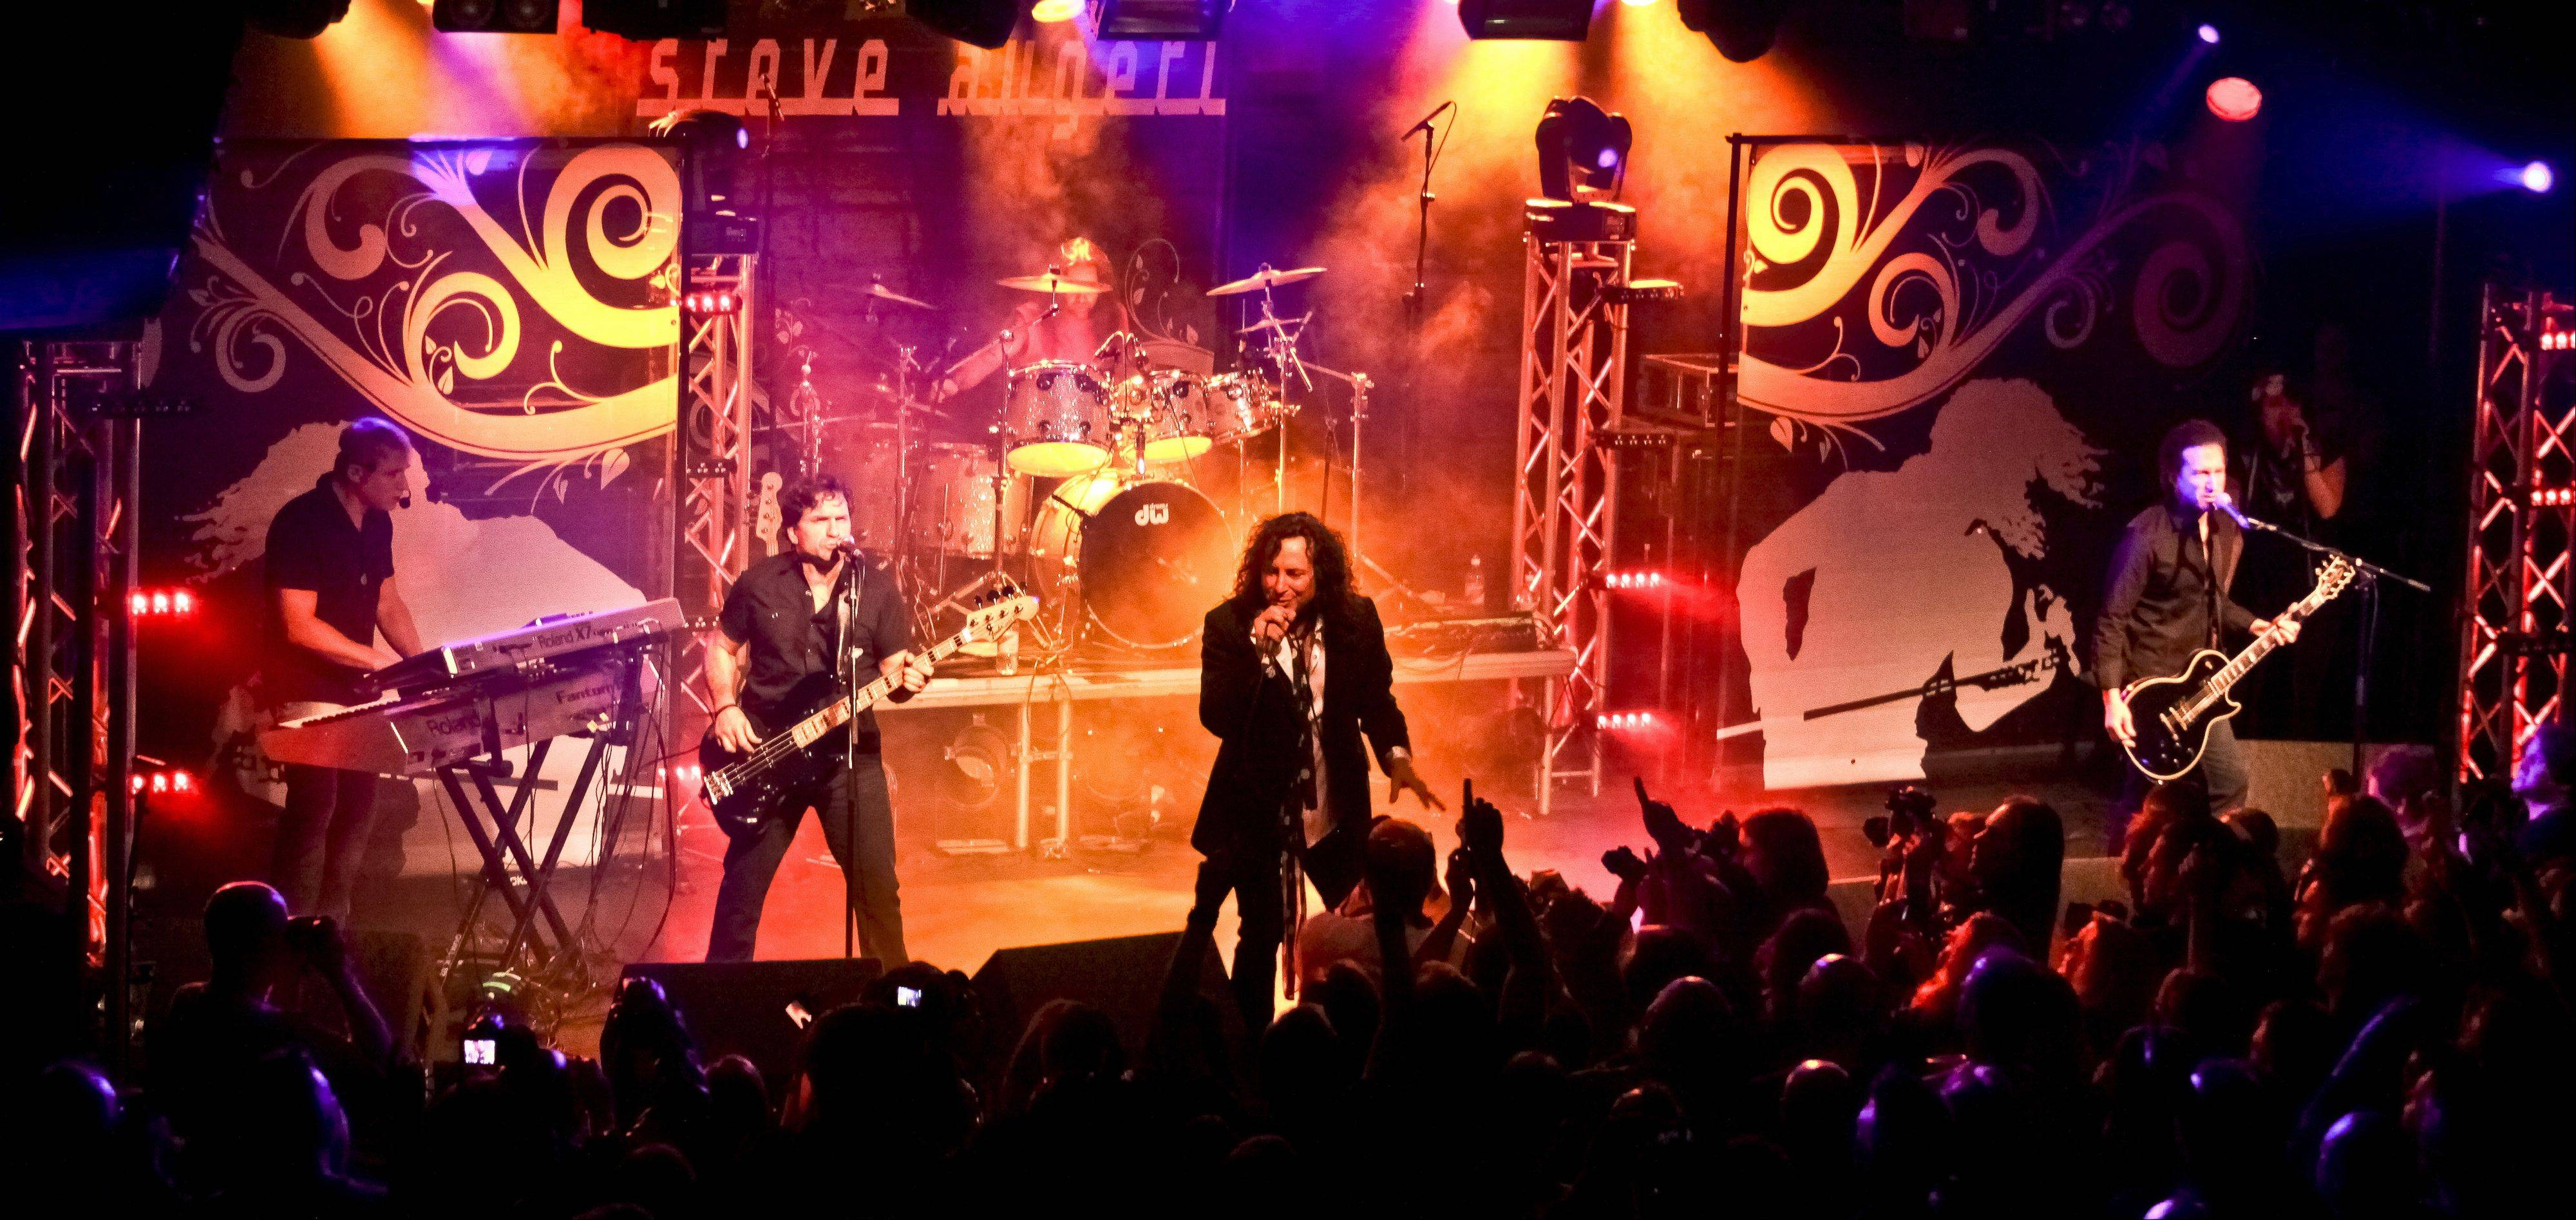 The annual Concert for a Cure to benefit the Paul Ruby Foundation for Parkinson's Research will feature the Steve Augeri Band at the Arcada Theatre Friday, Aug. 2.